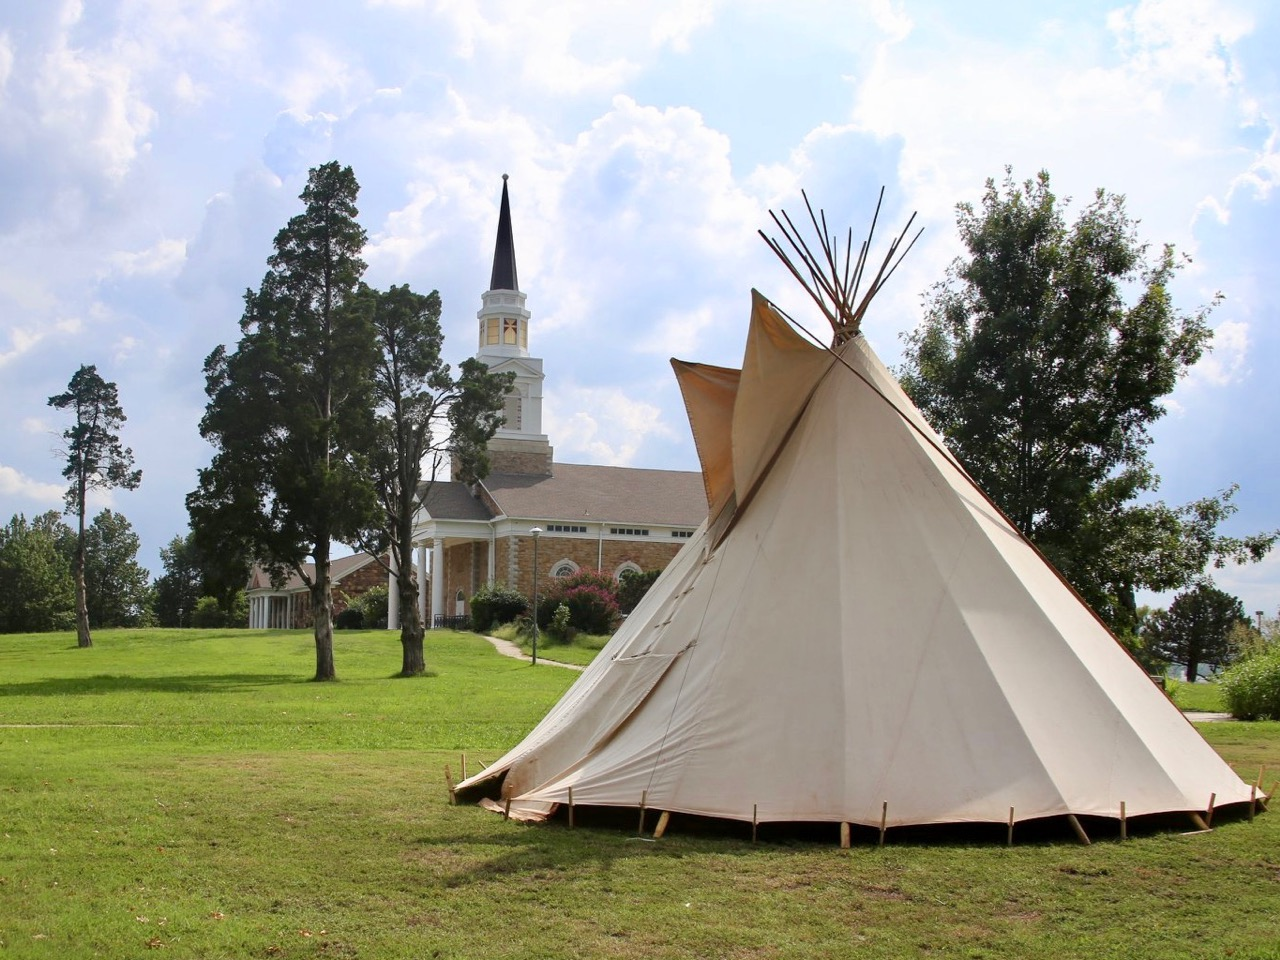 Historic Indian college secures charter from Otoe-Missouria Tribe